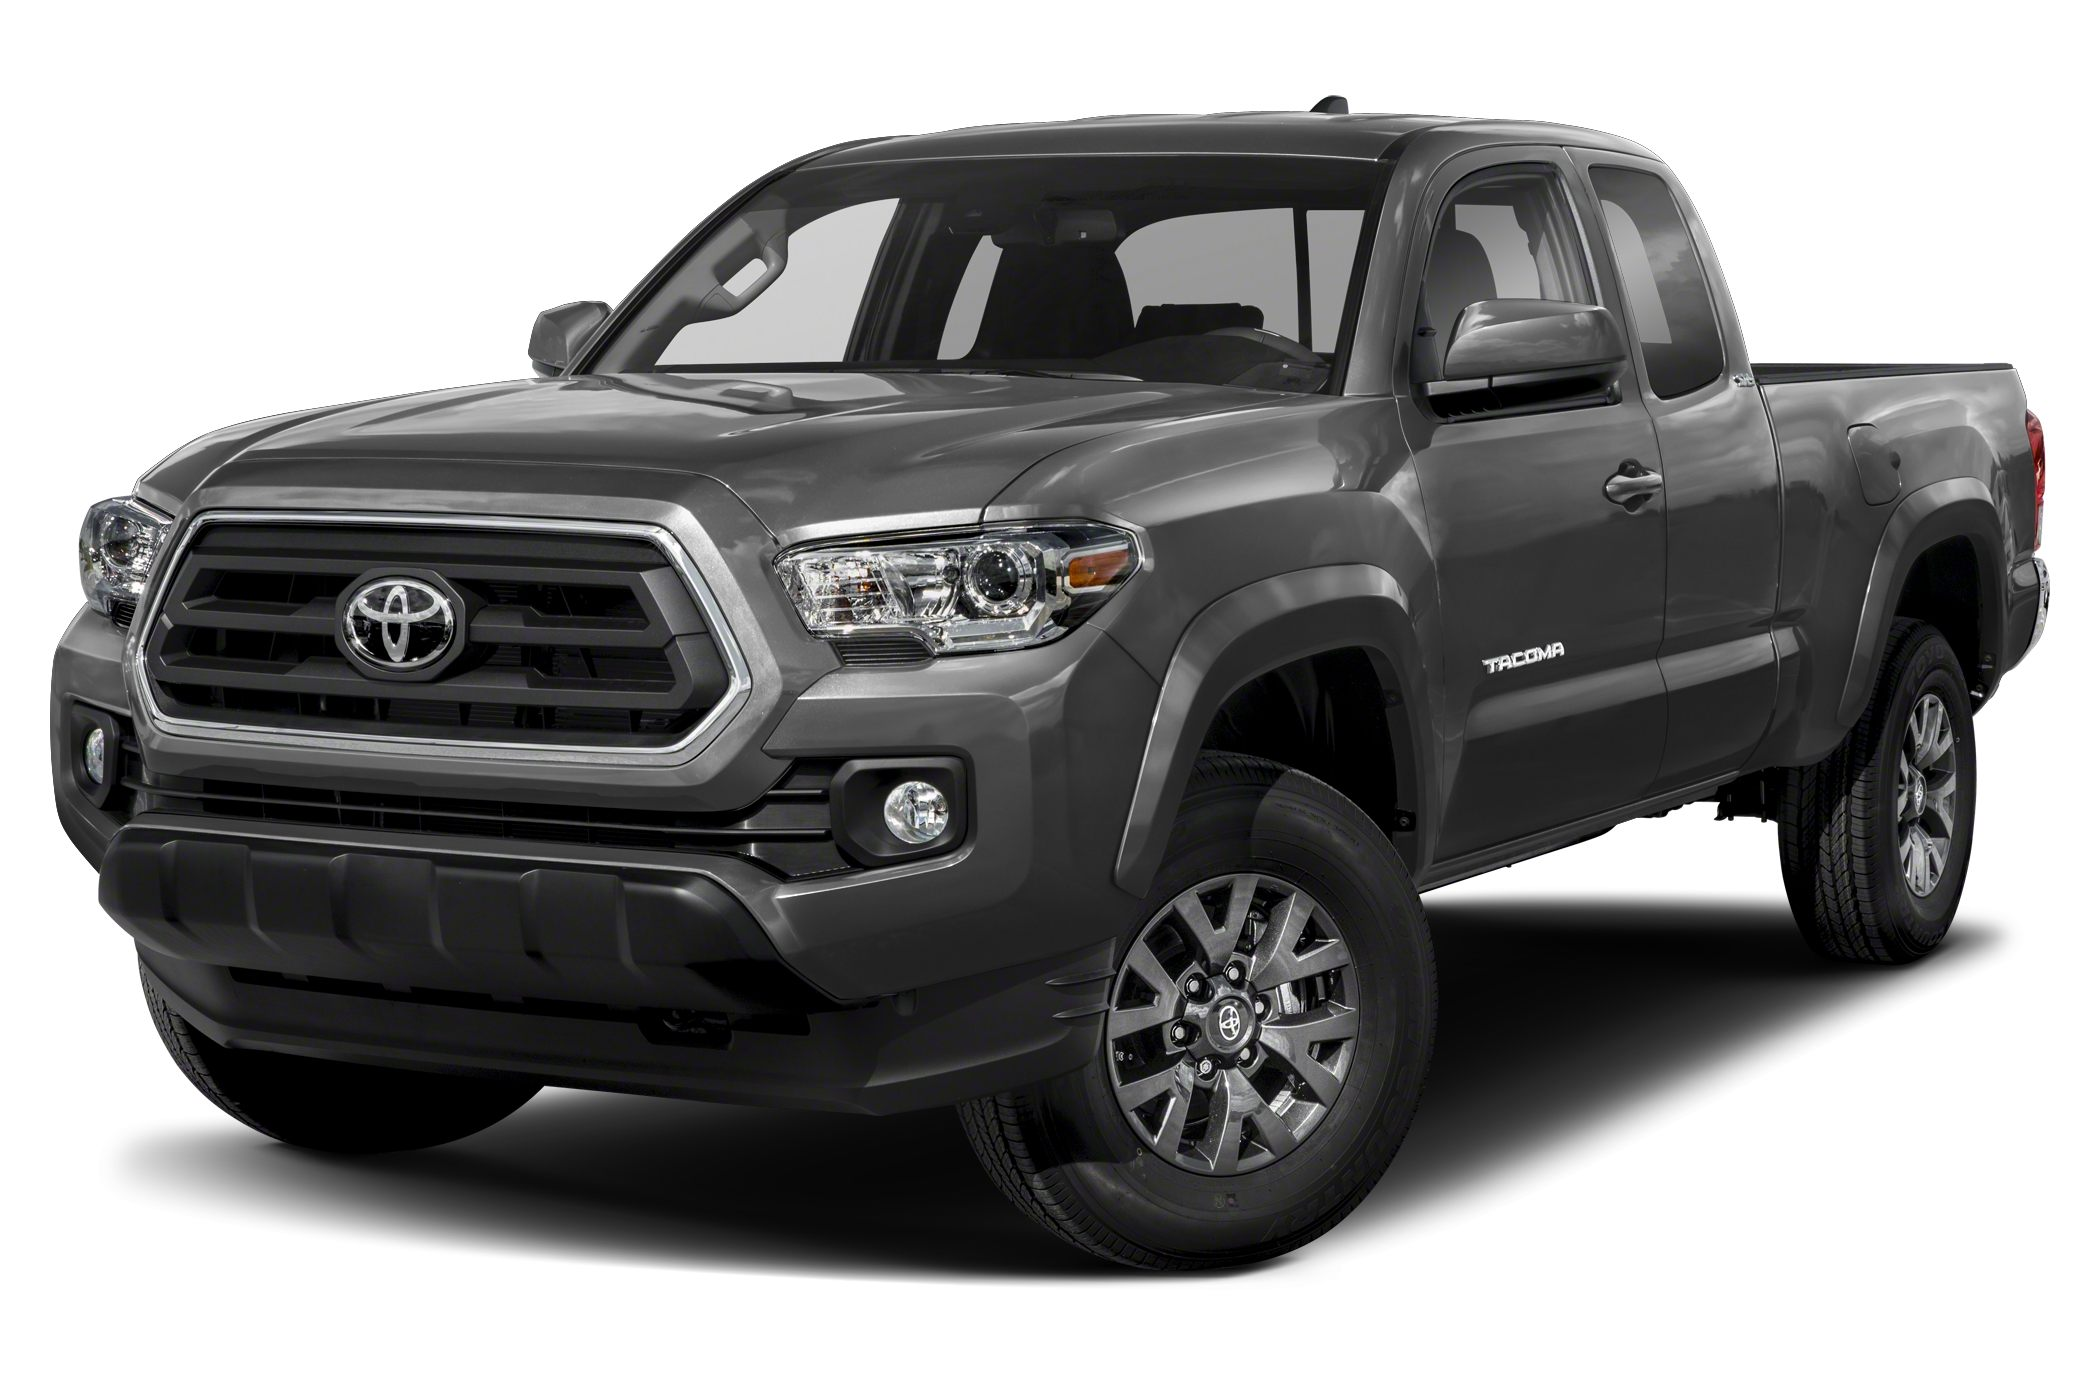 2020 Toyota Tacoma TRD Sport V6 4x2 Access Cab 127.4 in. WB